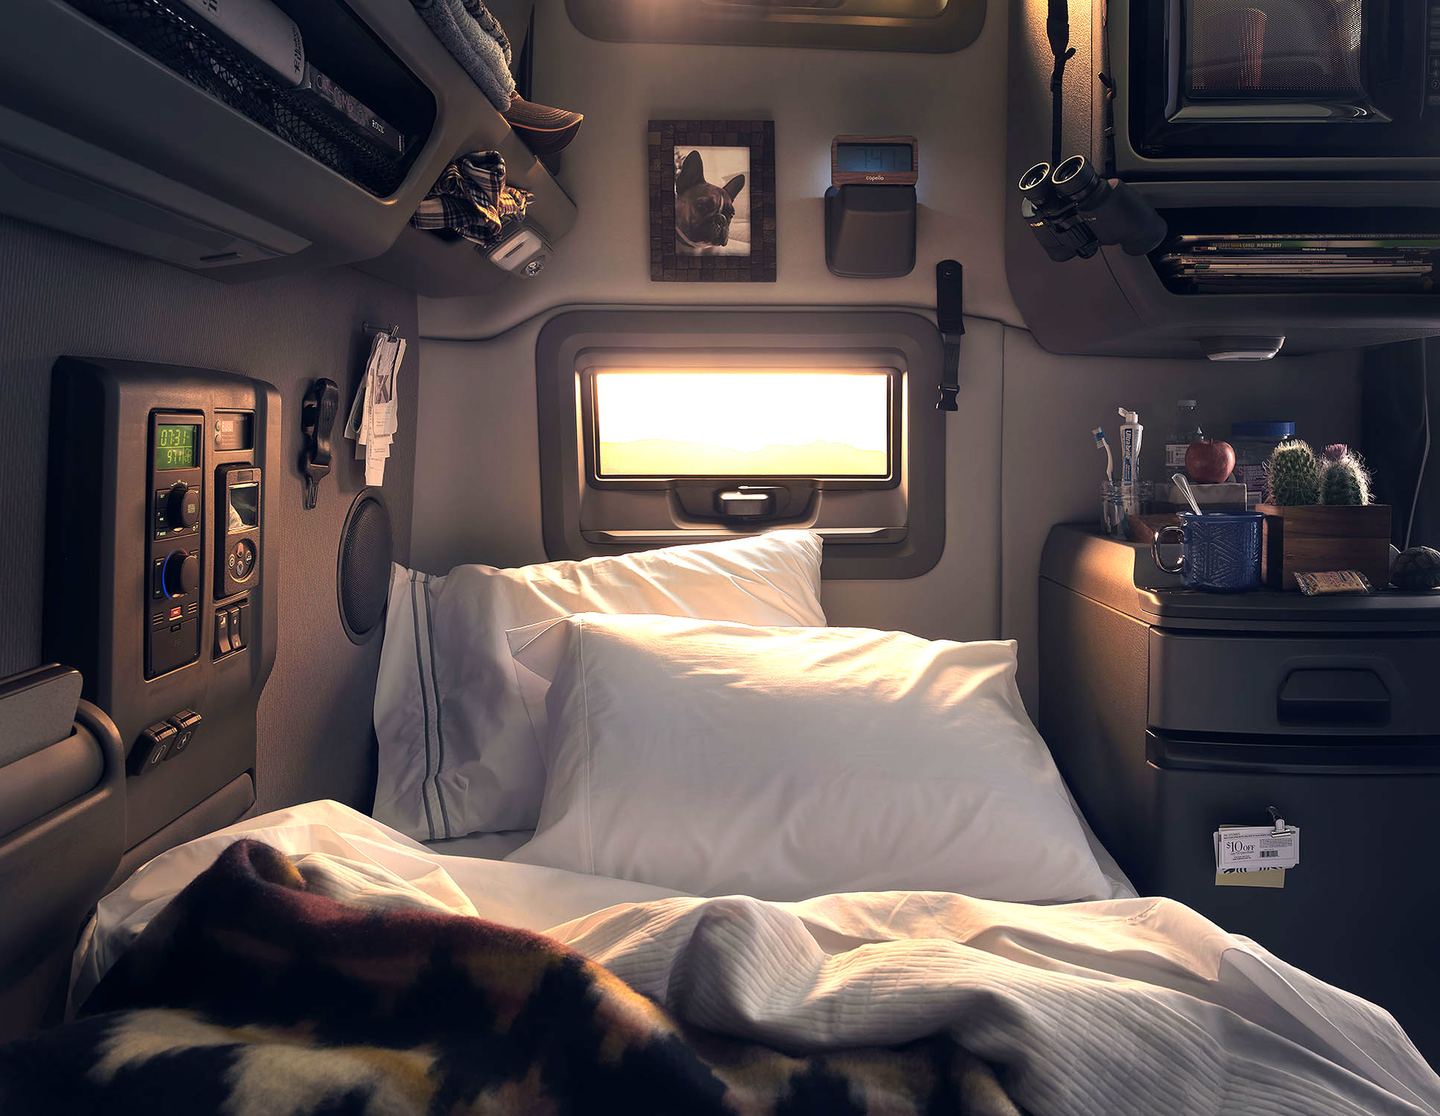 The Volvo VNL sleeper cab puts the control panel next to the lower bunk and offers lighting control, locks, an inverter, charging and audio ports.